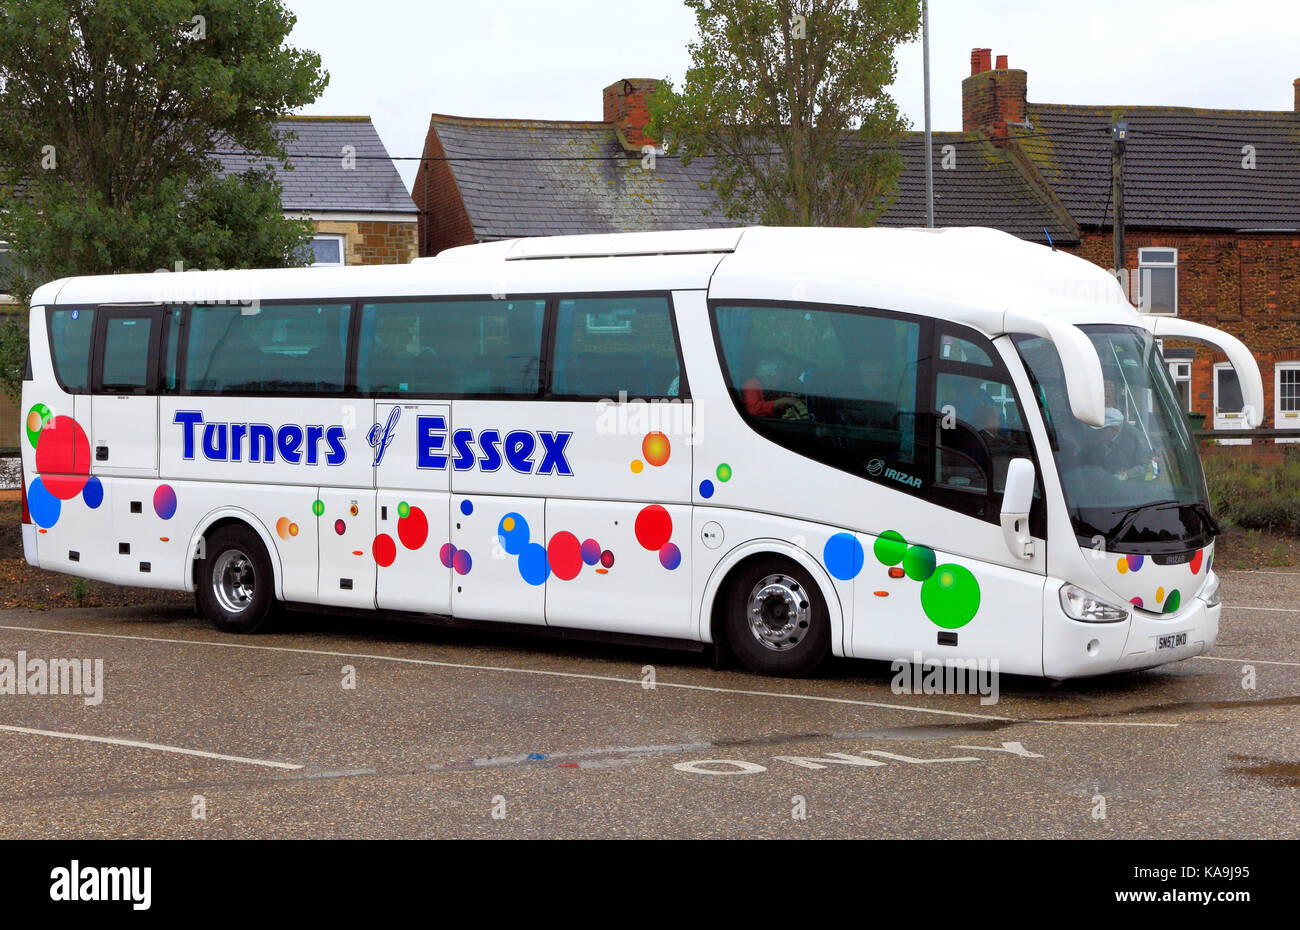 Turners of Essex, coach, coaches, day trips, trip, excursion, excursions, holiday, holidays, transport, travel company, - Stock Image